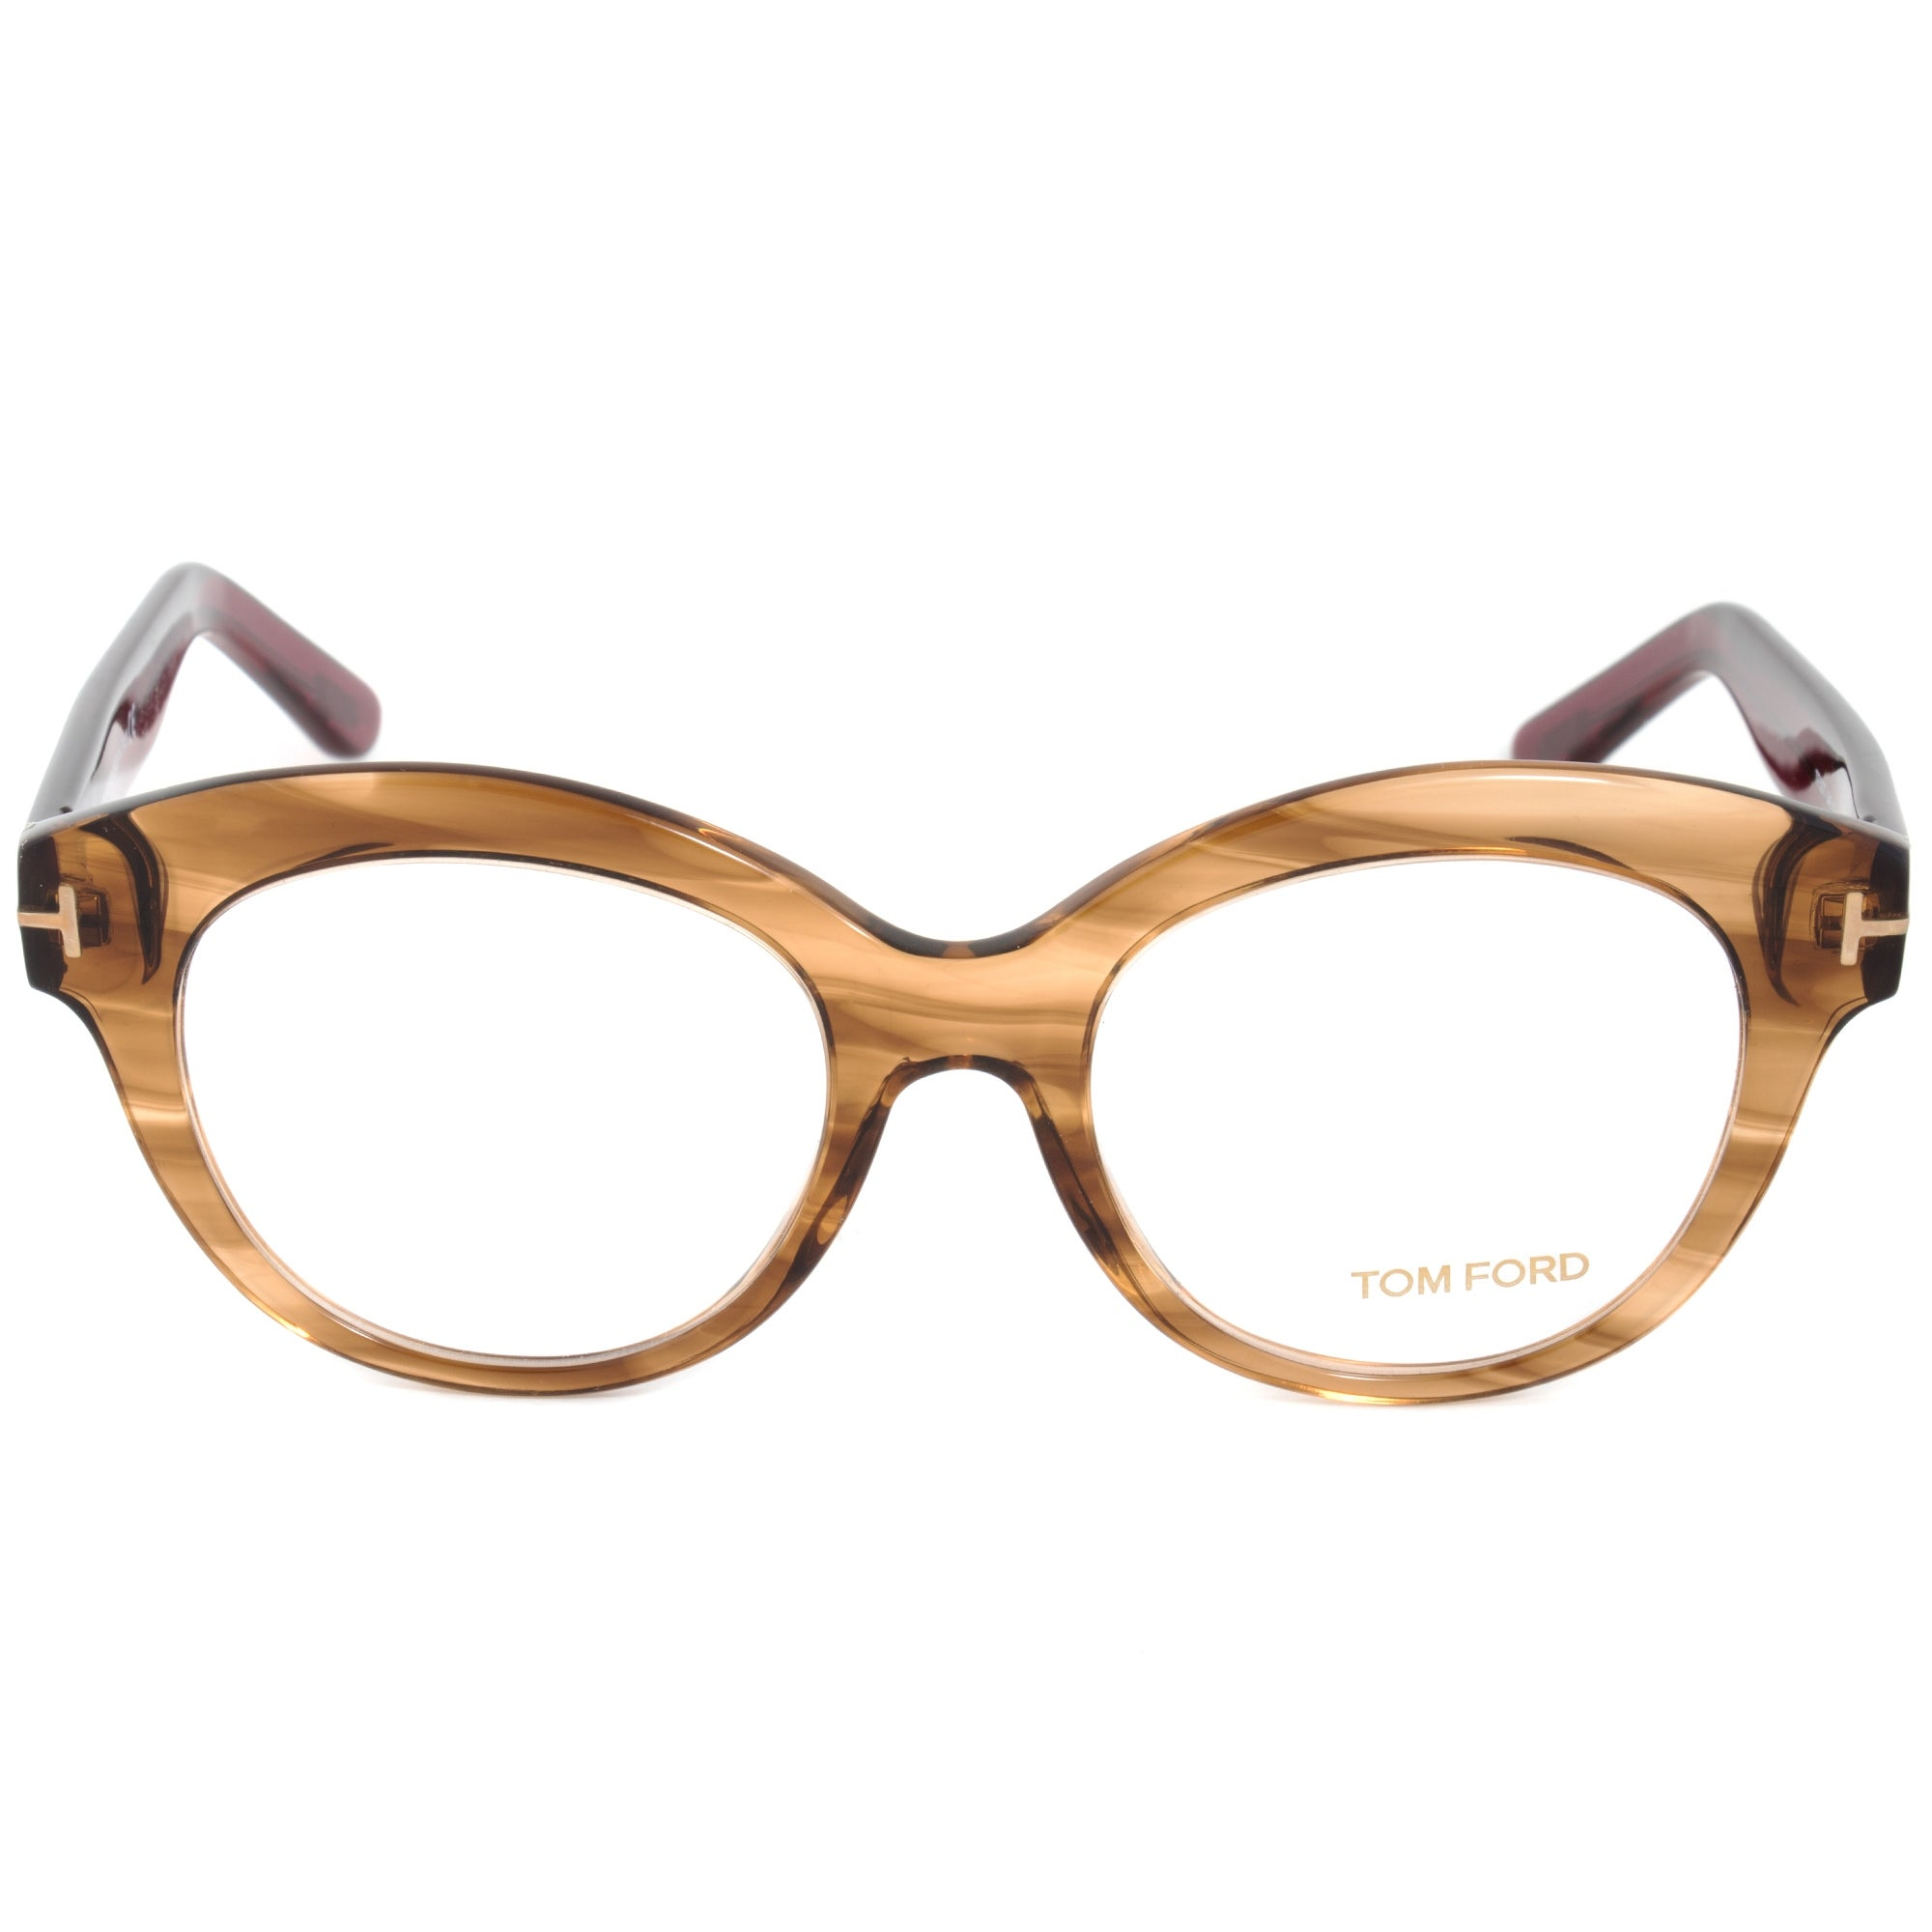 Tom Ford FT5377 48 Round | Brown/Burgundy| Eyeglass Frames - Free ...